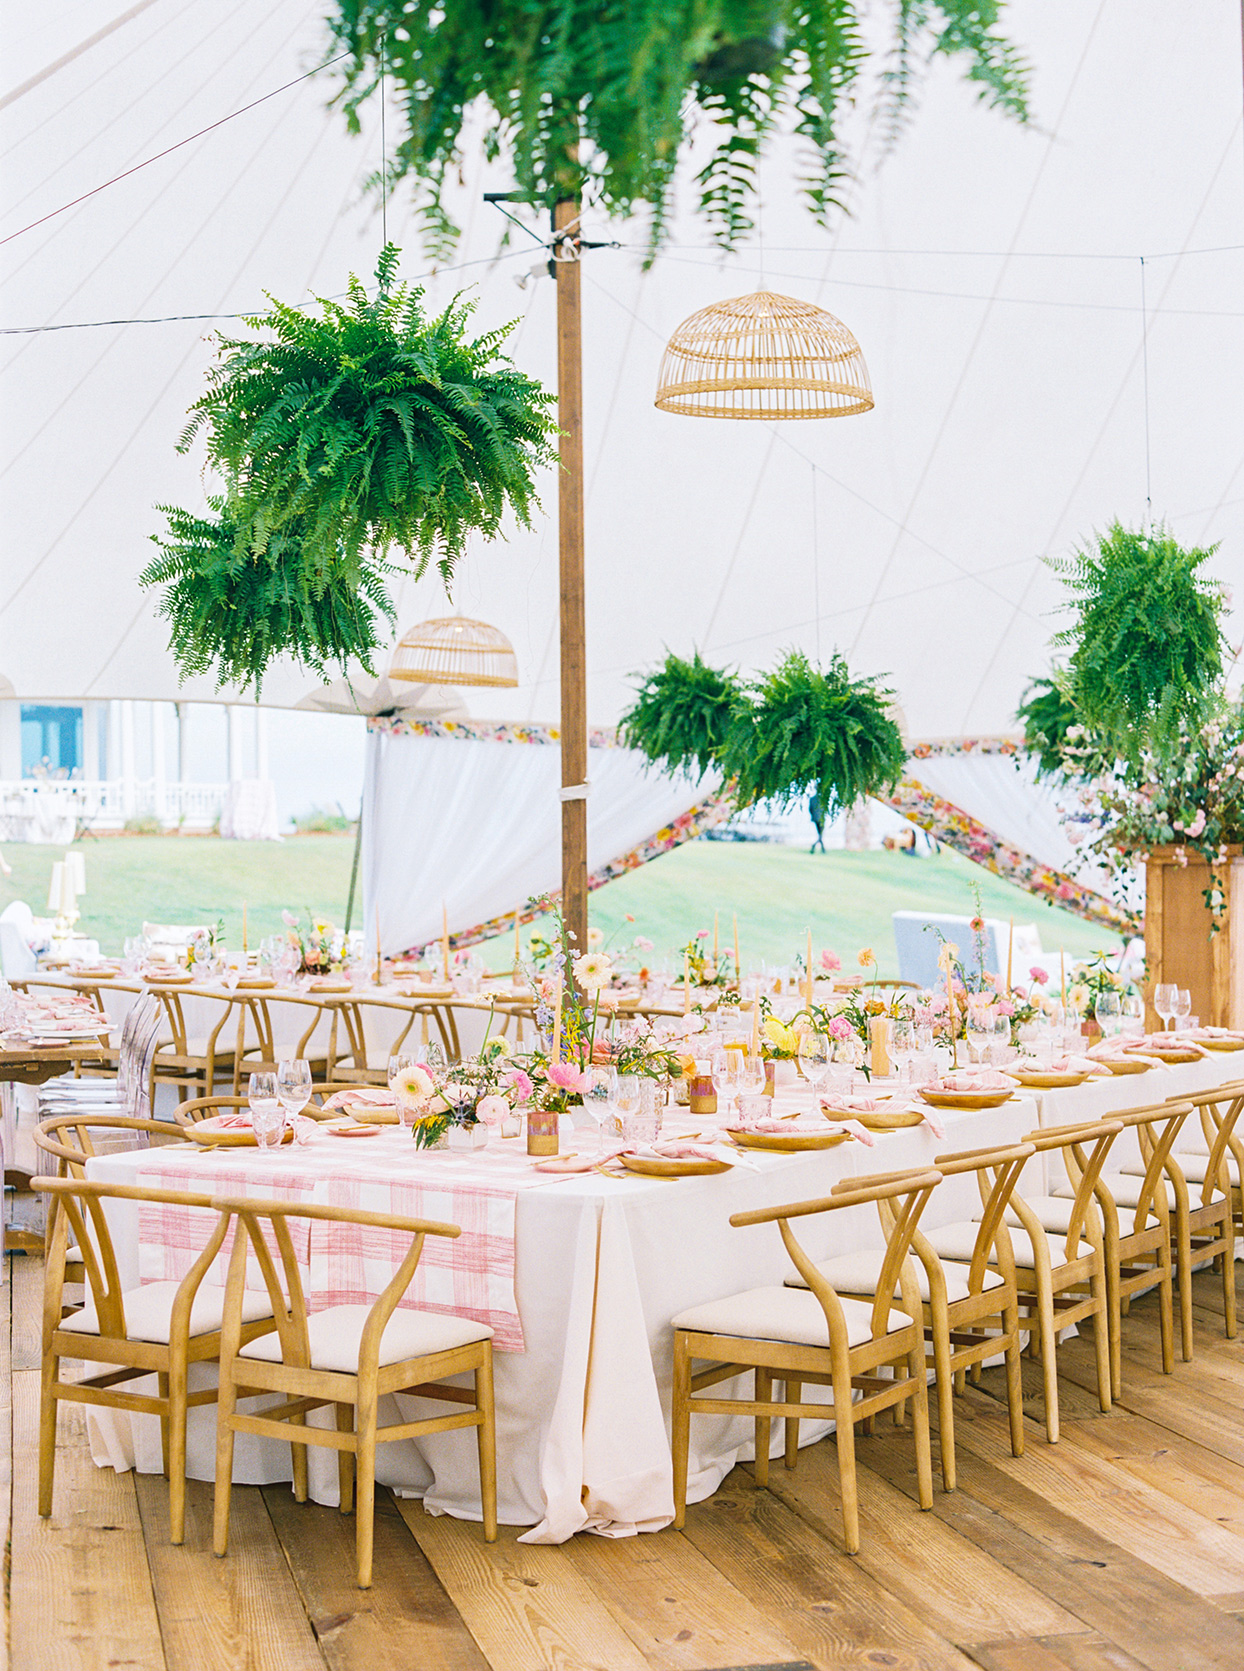 lauren dan wedding reception tables with hanging ferns